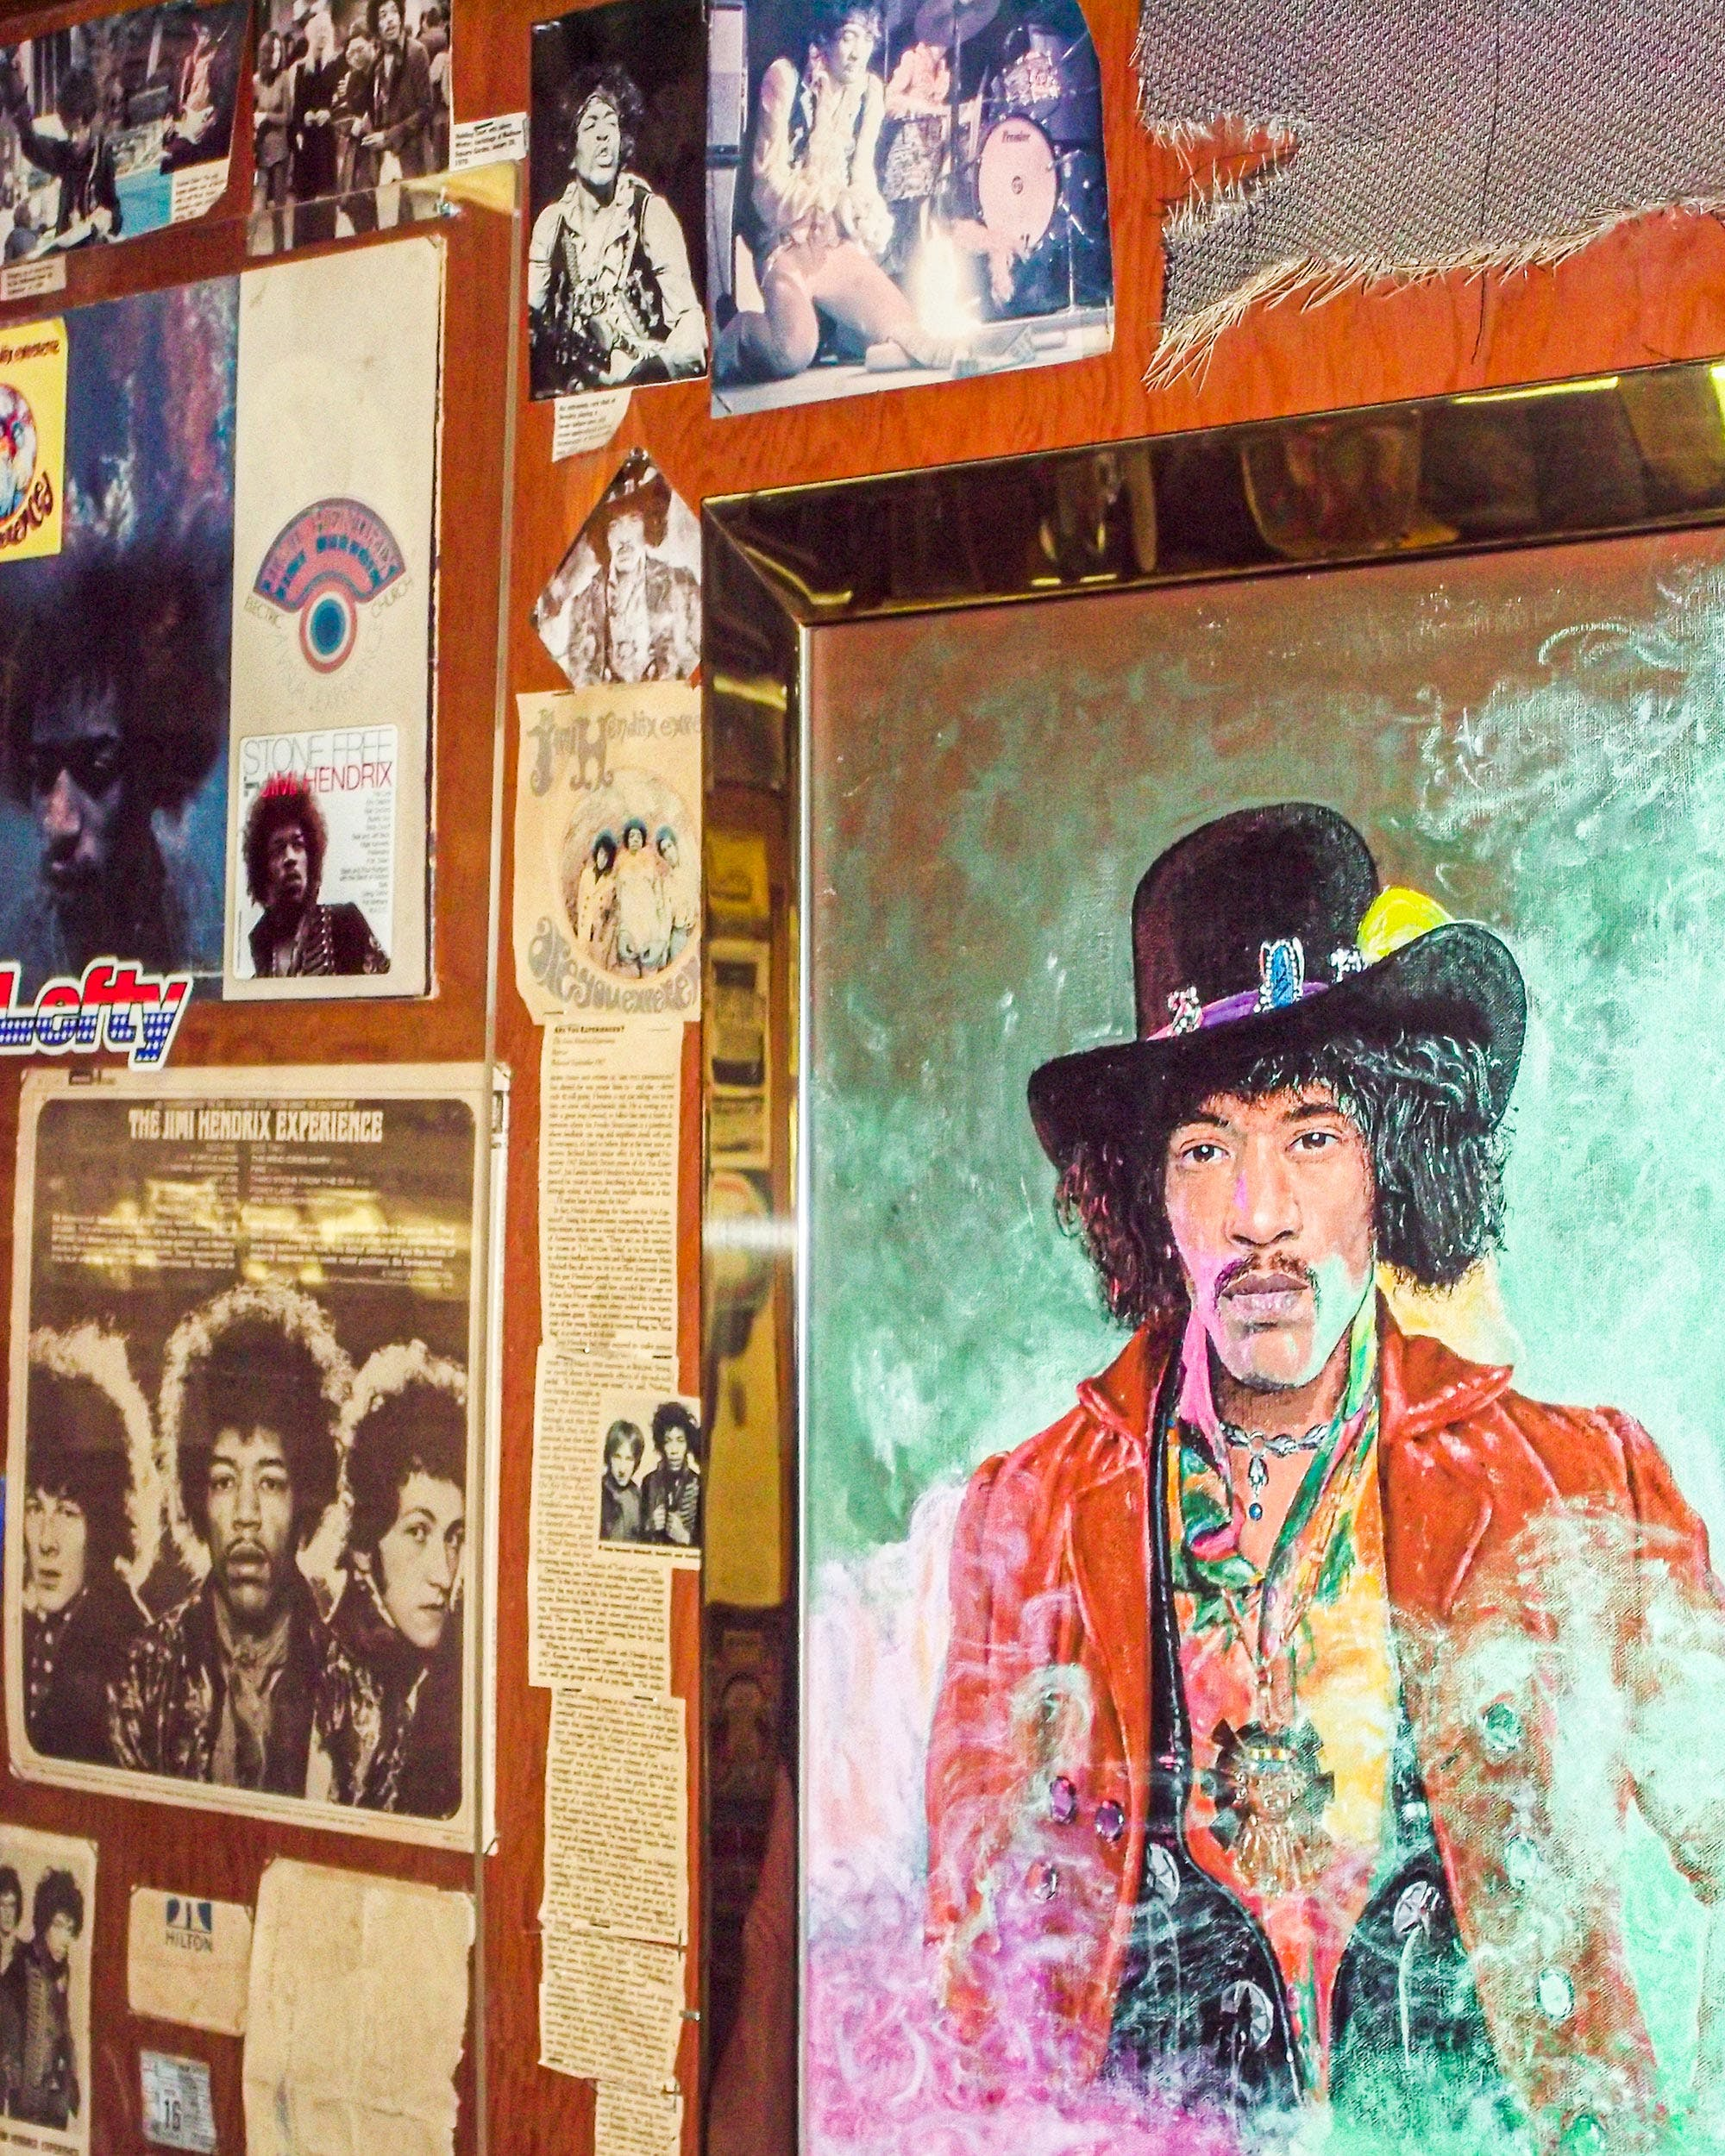 A Jimi Hendrix oil painting by San Marcos artist Michael Giles is surrounded by memorabilia collected by Bobby after meeting Hendrix in 1968 after his first Dallas concert.